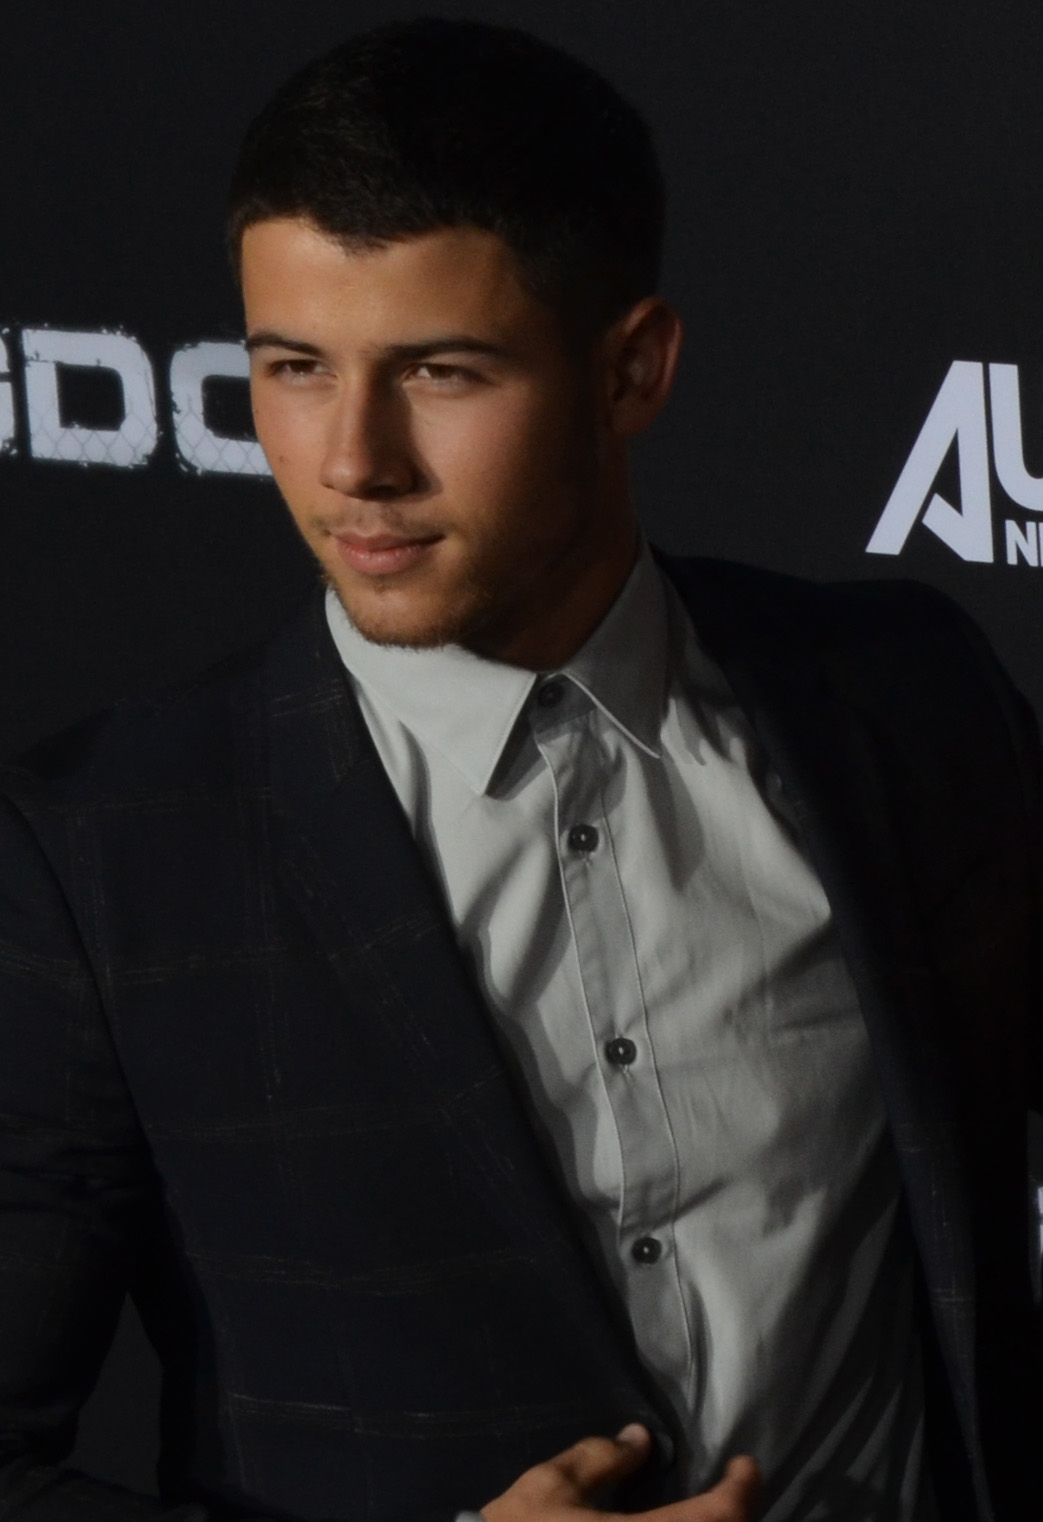 Nick Jonas - Wikipedia